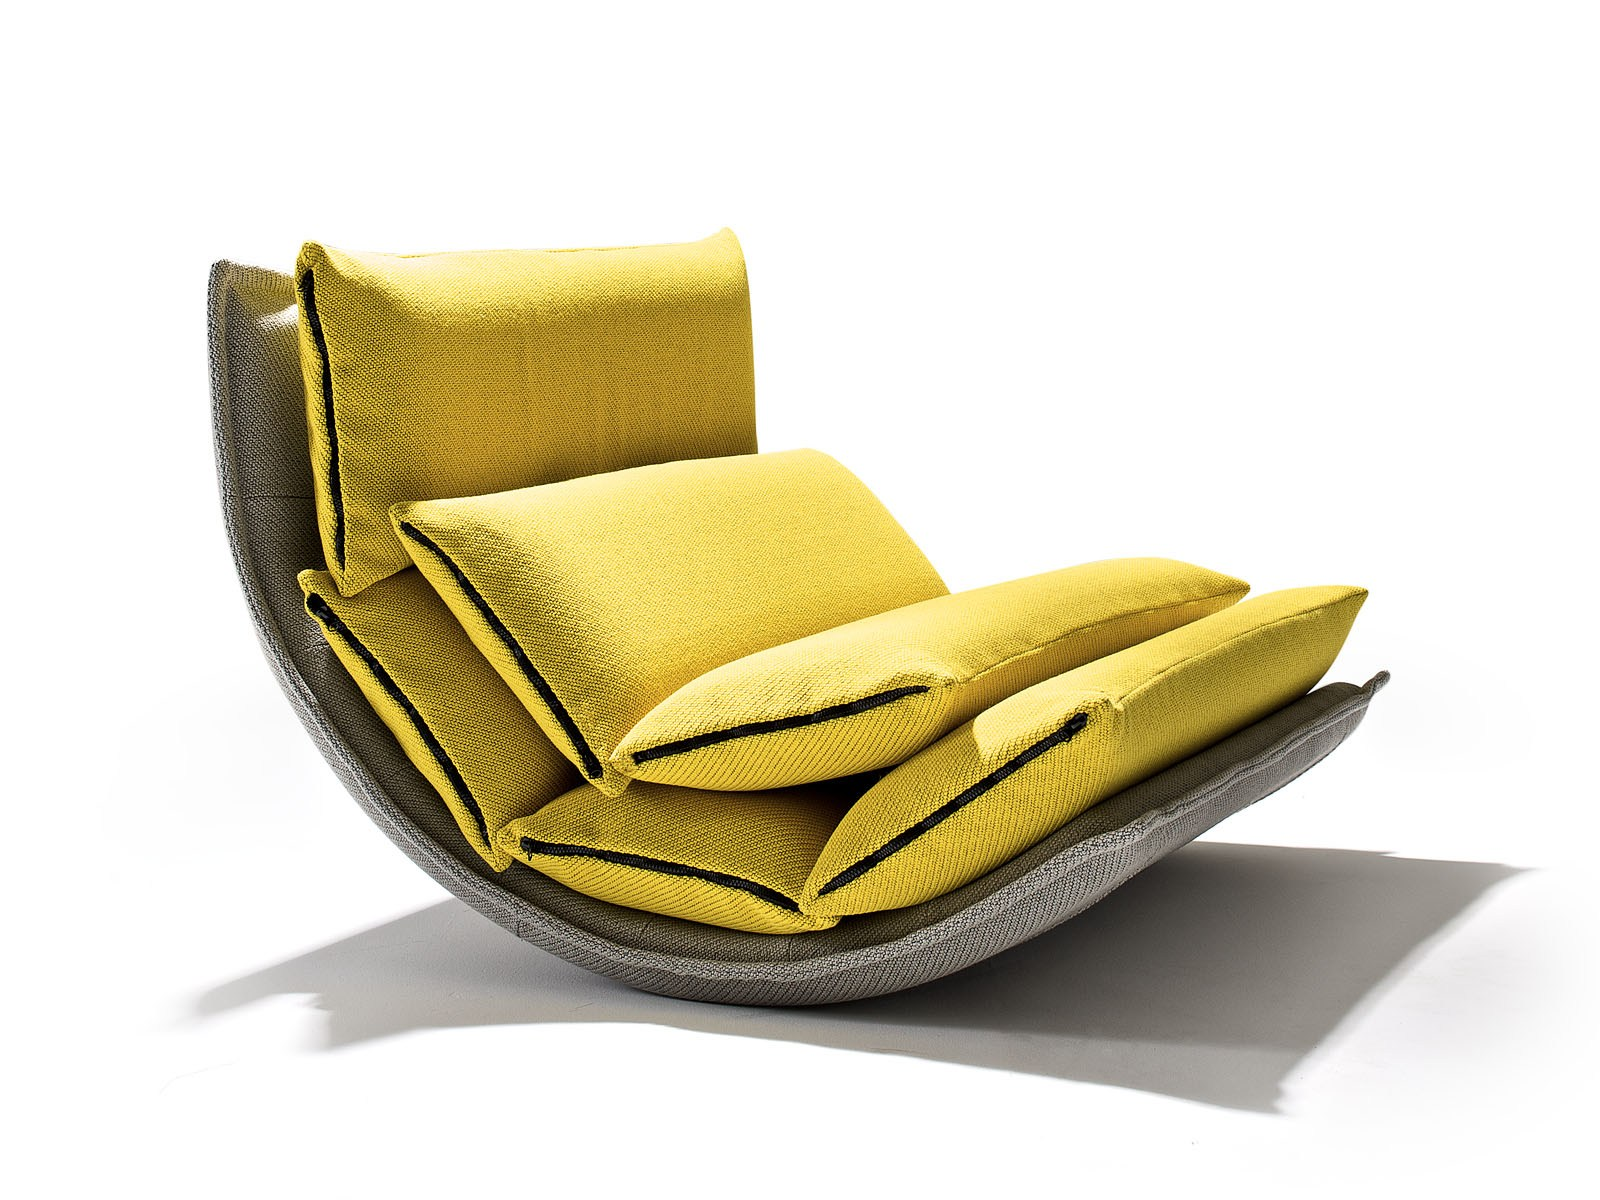 Rocking upholstered armchair DIM SUM By Montis design Simon Pengelly